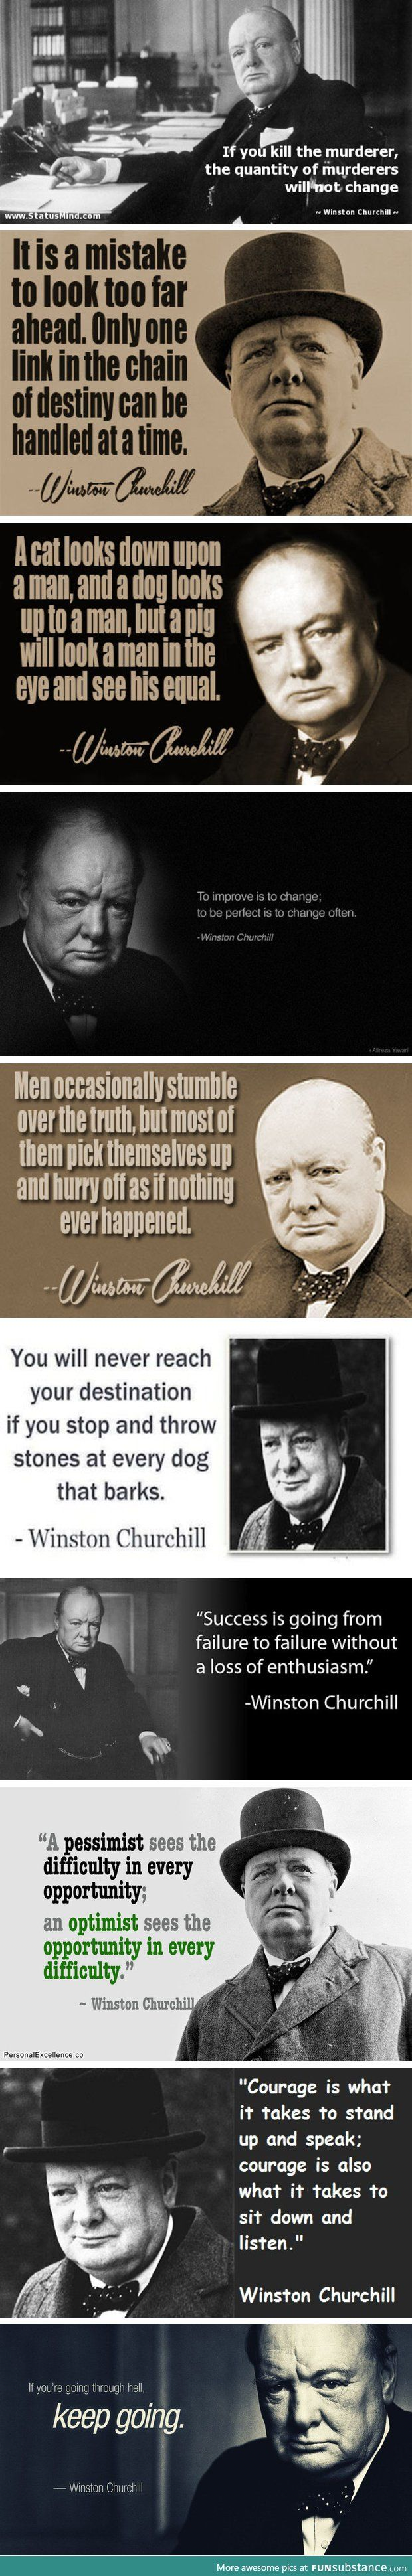 Sir Winston Churchill was a wise man                                                                                                                                                                                 More